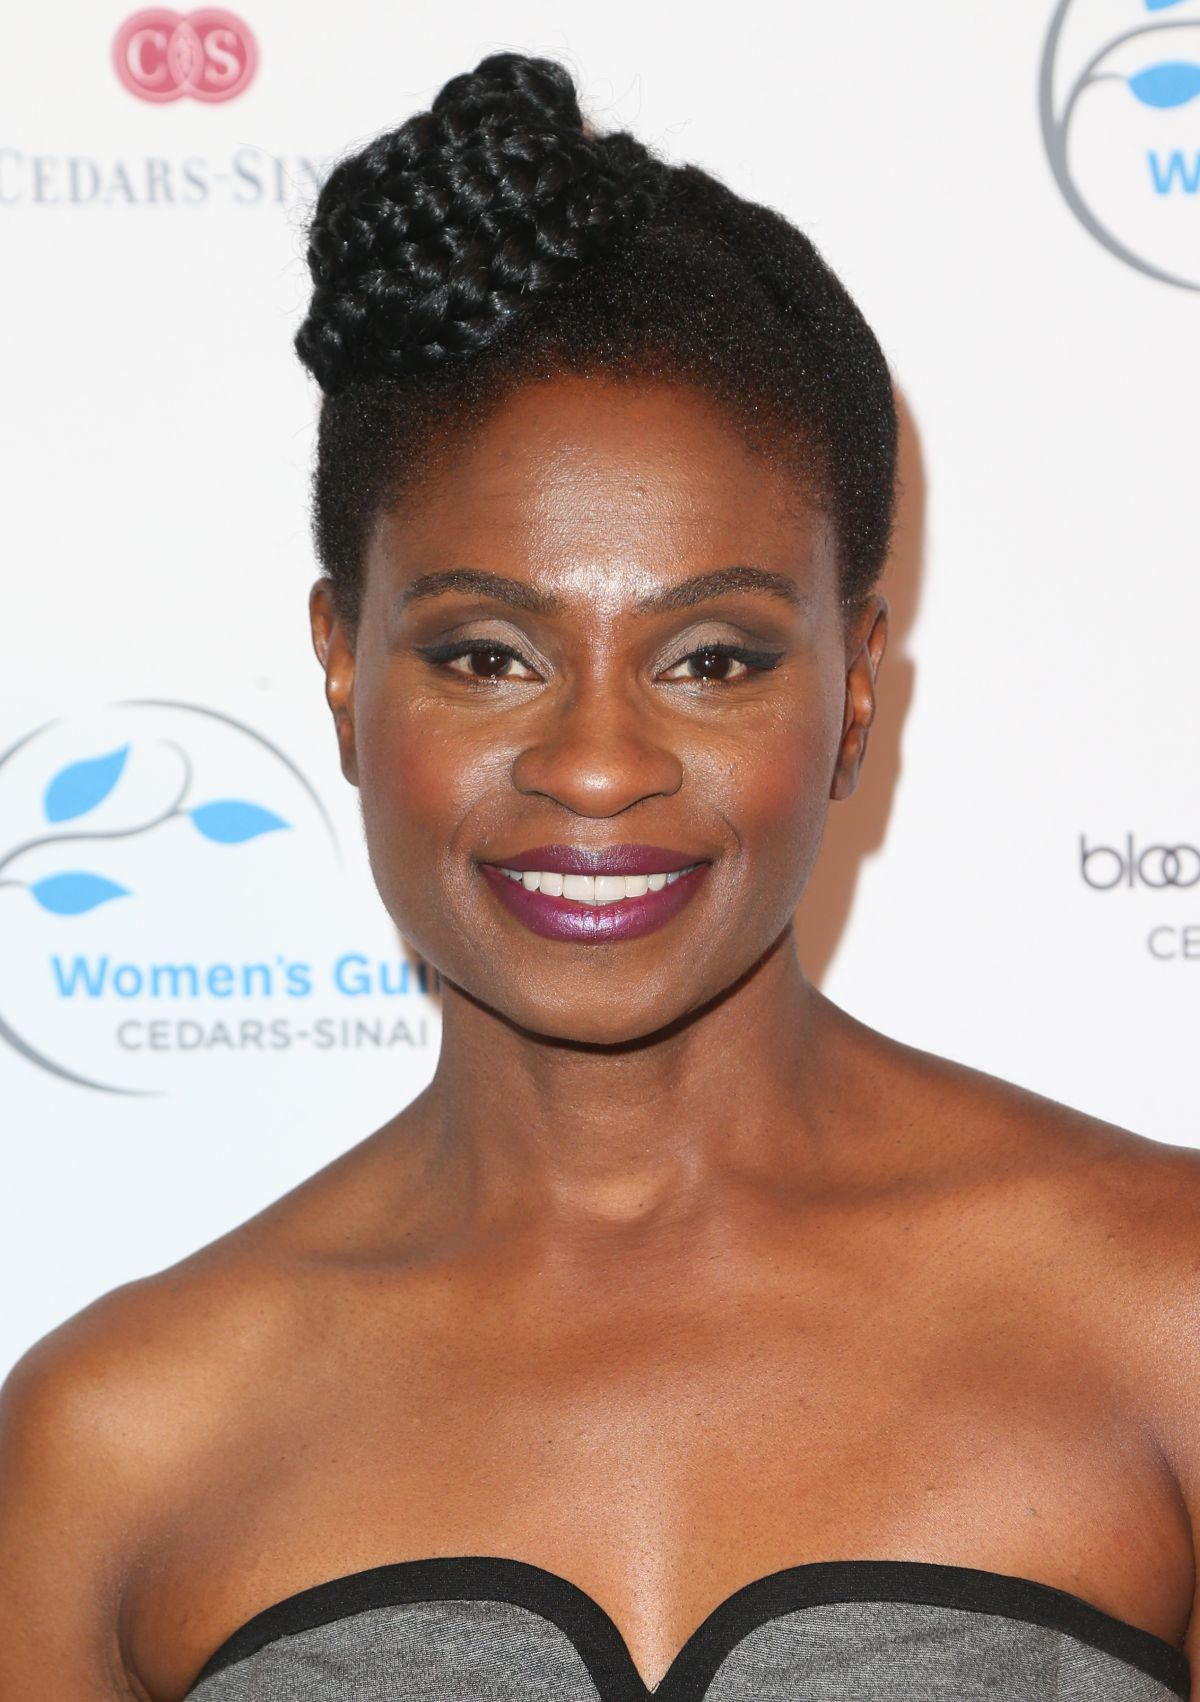 ADINA PORTER at Women's Guild Cedars Sinai Annual Spring Luncheon in Los Angeles 04/20/2017   adina-porter-at-women-s-guild-cedars-sinai-annual-spring-luncheon-in-los-angeles-04-20-2017_8